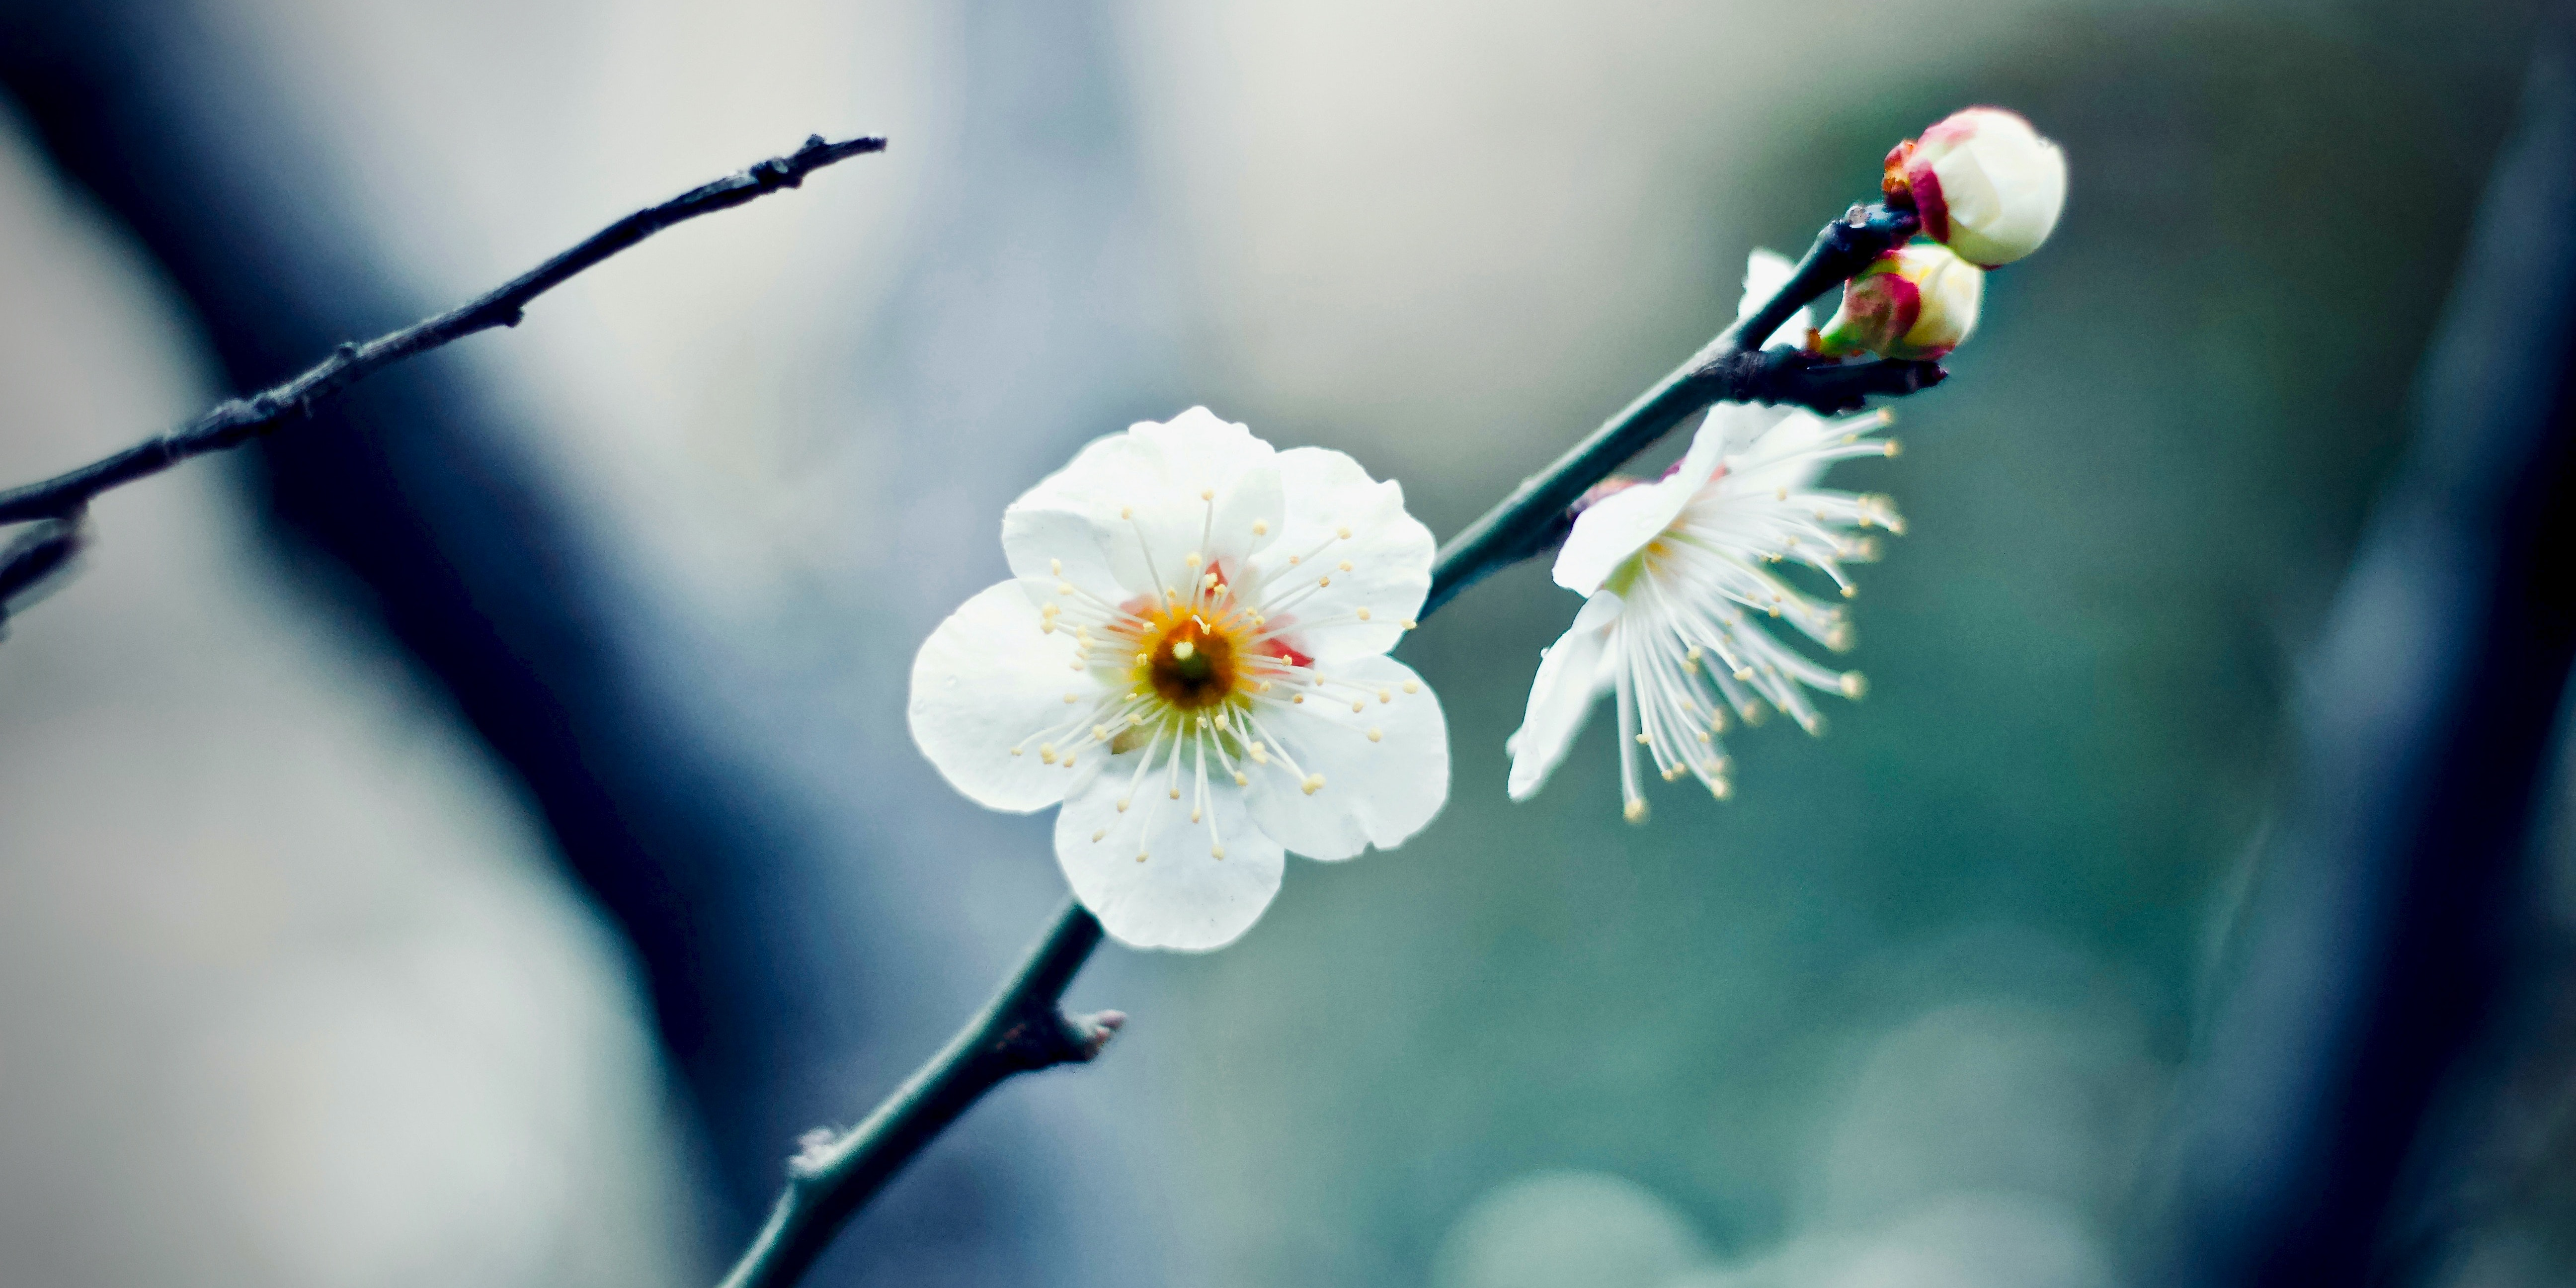 Japan's Famous Cherry Blossoms Are Going Rogue